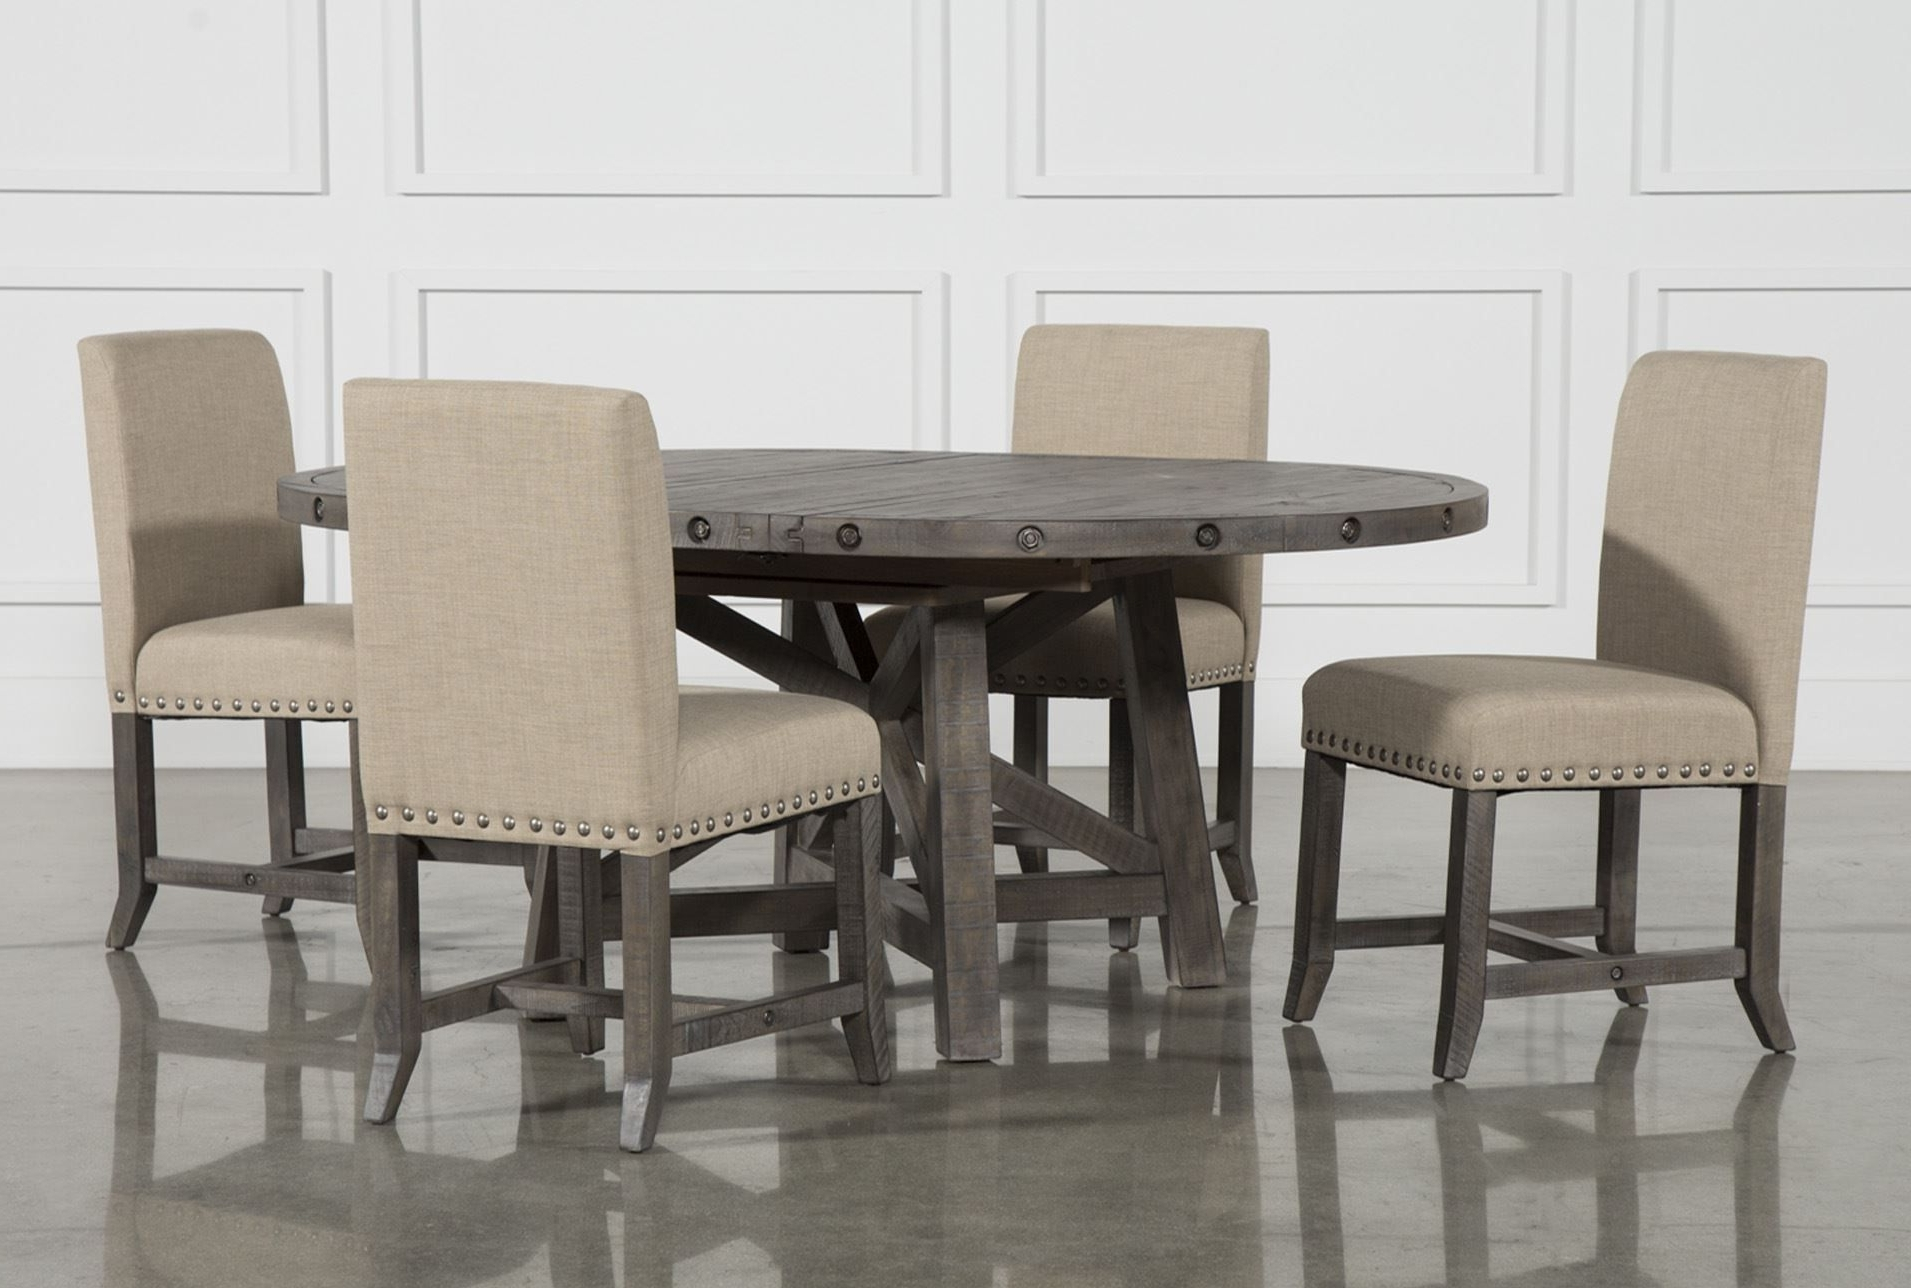 Caden 5 Piece Round Dining Sets With Upholstered Side Chairs Throughout Most Up To Date Jaxon Grey 5 Piece Round Extension Dining Set W/upholstered Chairs (View 5 of 25)